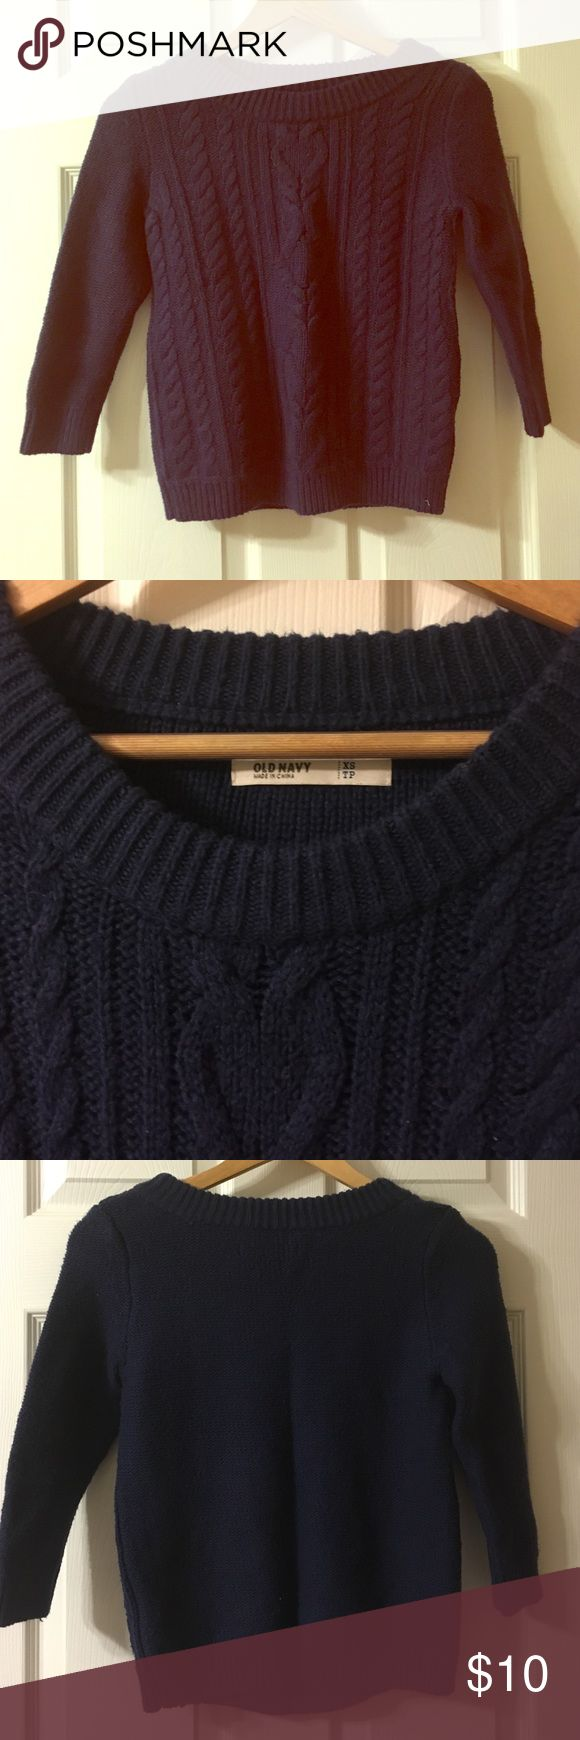 old navy🔸navy sweater Navy sweater by Old Navy has been gently worn and will definitely keep you warm this winter. Old Navy Sweaters Crew & Scoop Necks